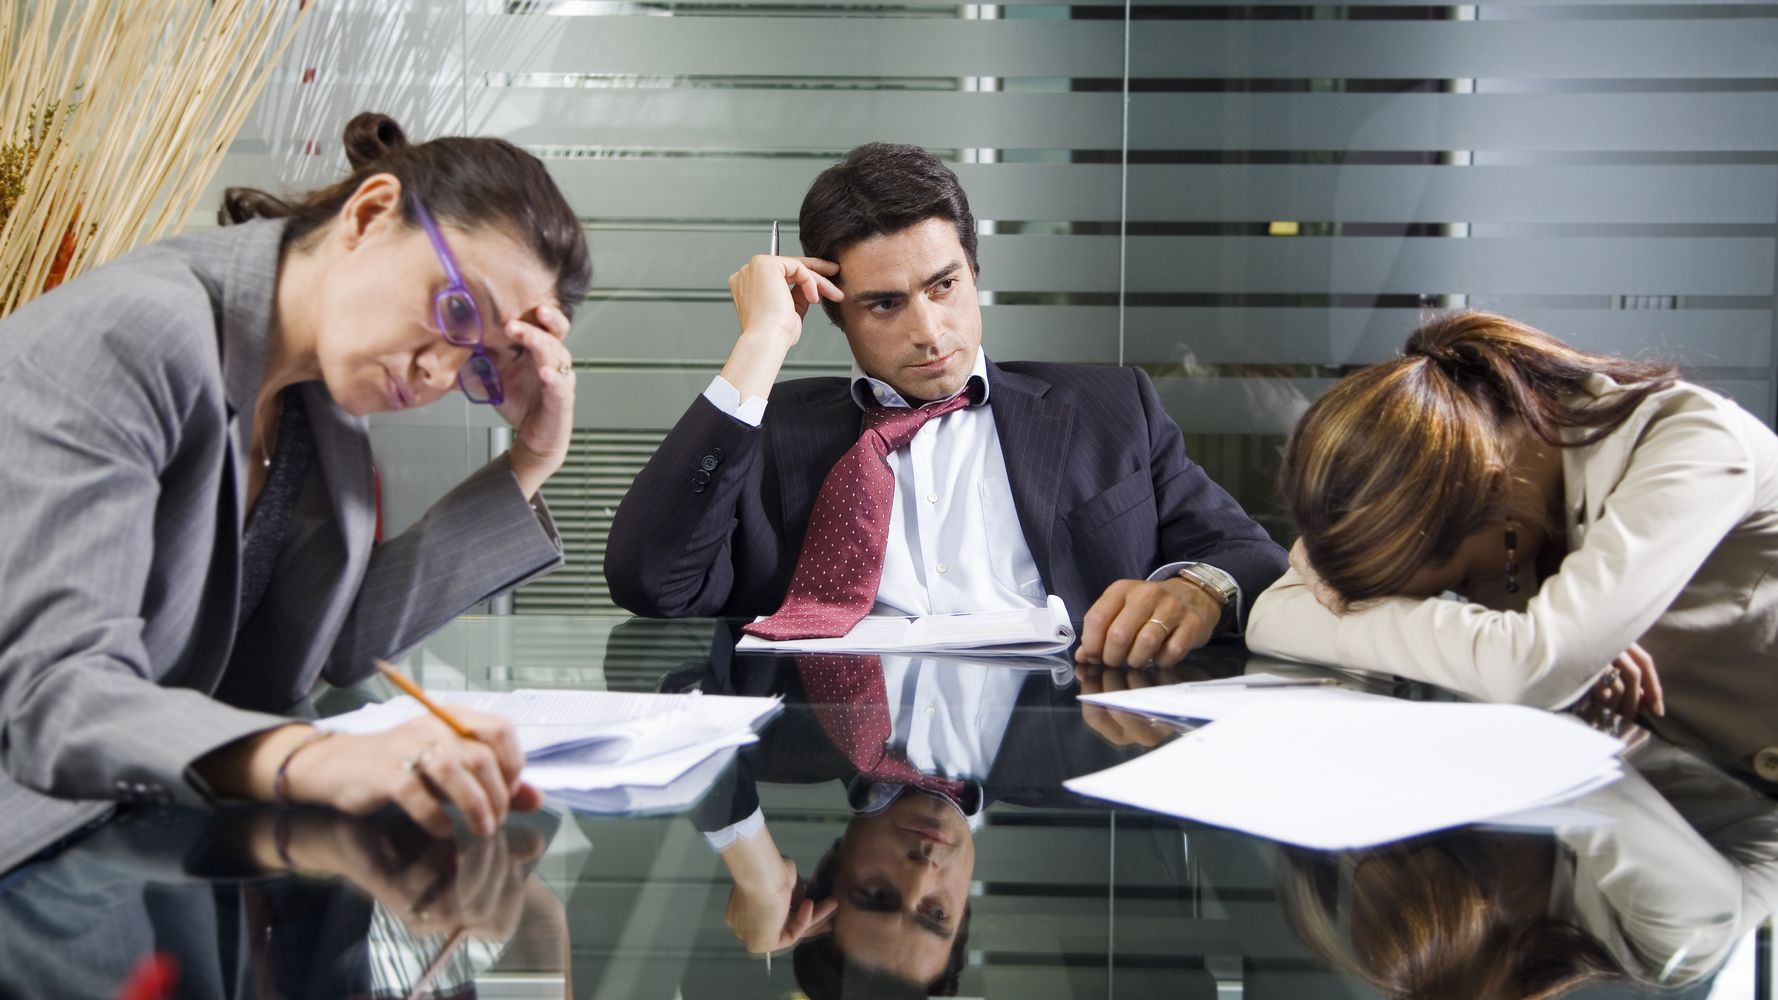 5 Ways to Reduce Internal Meetings By 75% | HuffPost